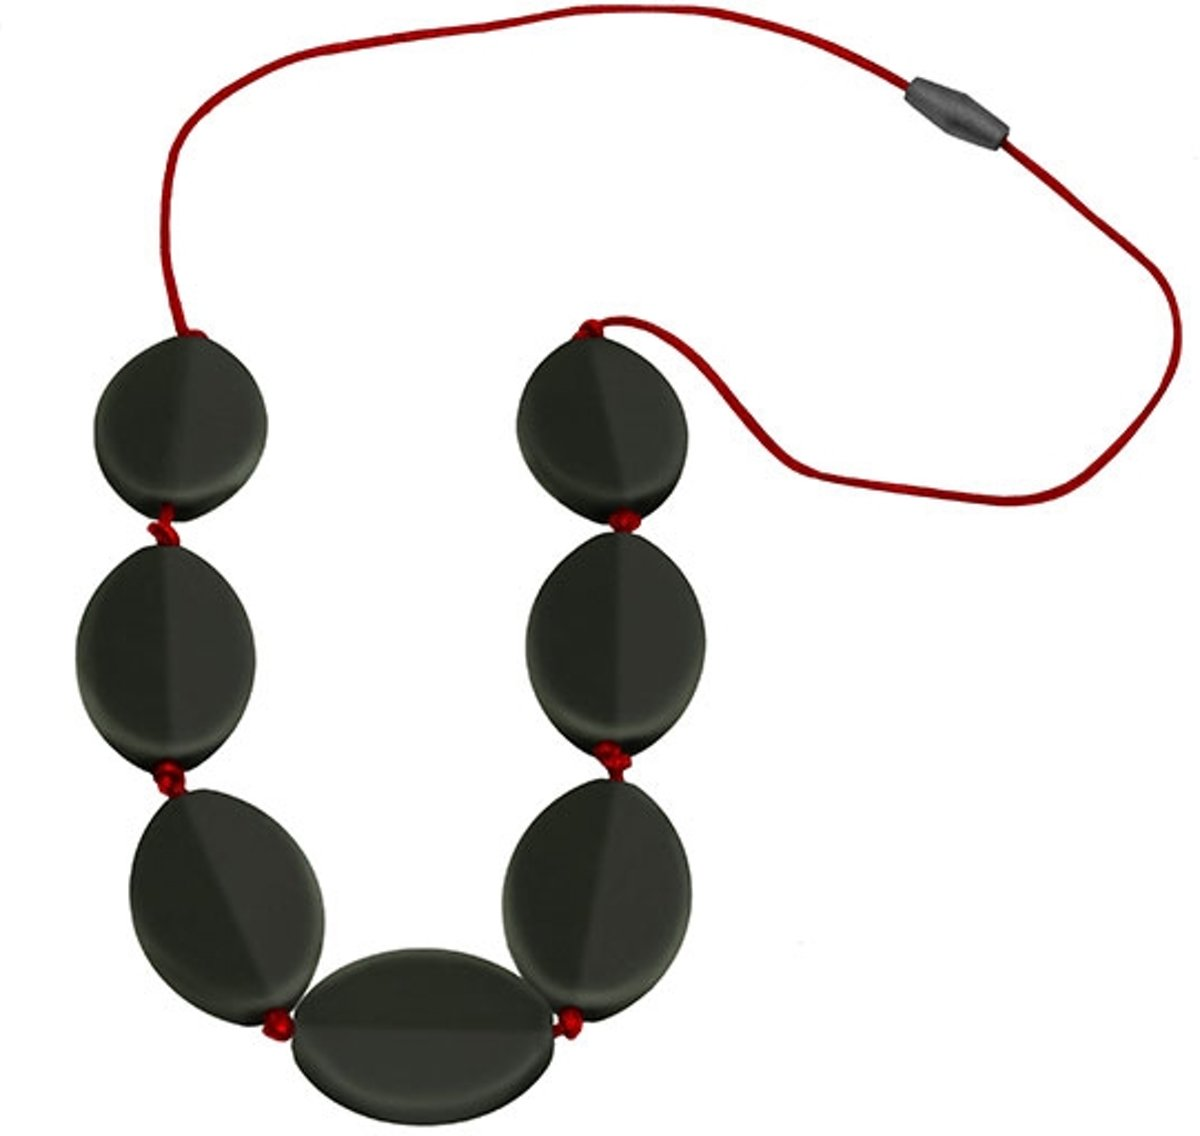 Jellystone Designs Caru Necklace - Kauwketting - Smokey Black with Scarlet Red cord kopen